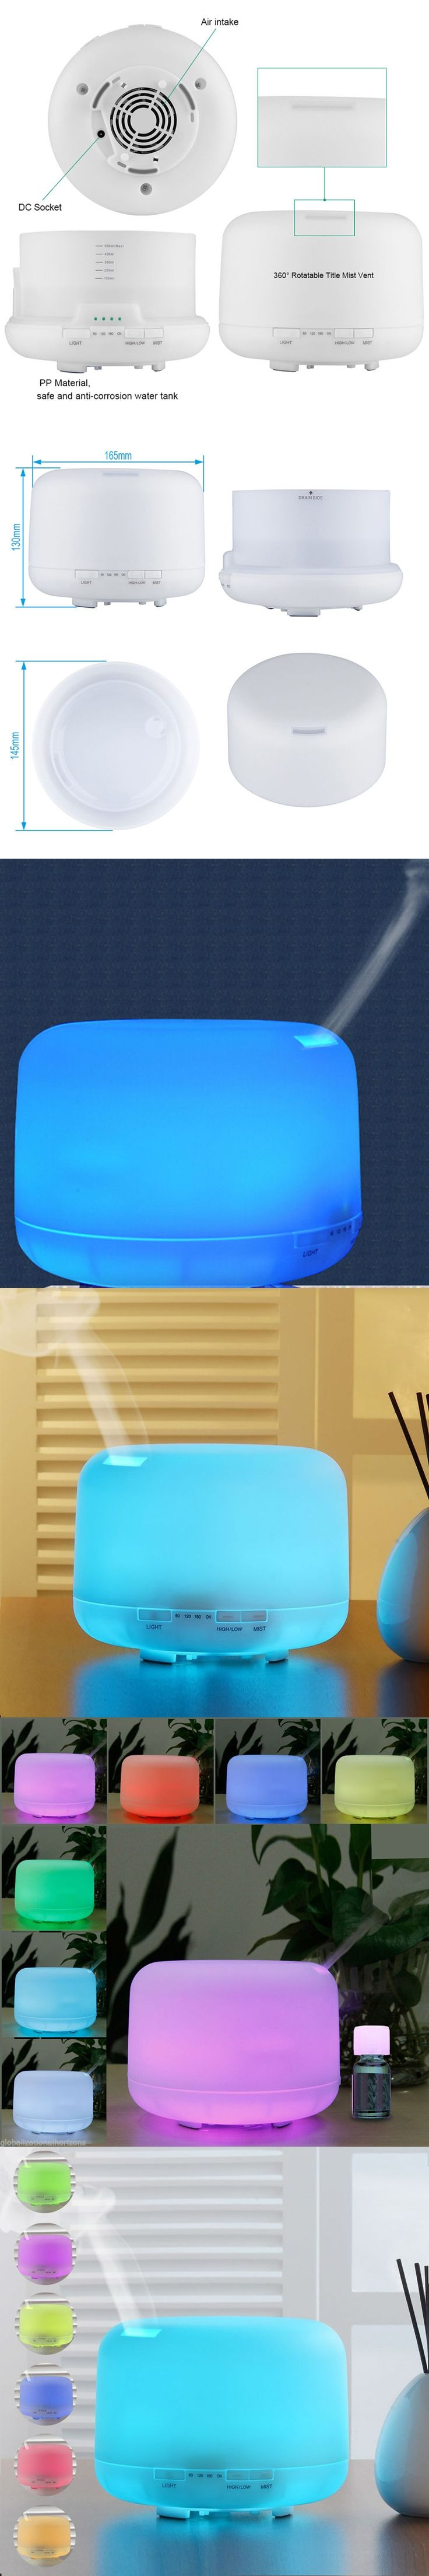 New Aromatherapy Air Humidifier 500ml Ultrasonic Mist Essential Oil Diffuser Waterless Auto Shutoff 7 Color Dimmable LED Lamps